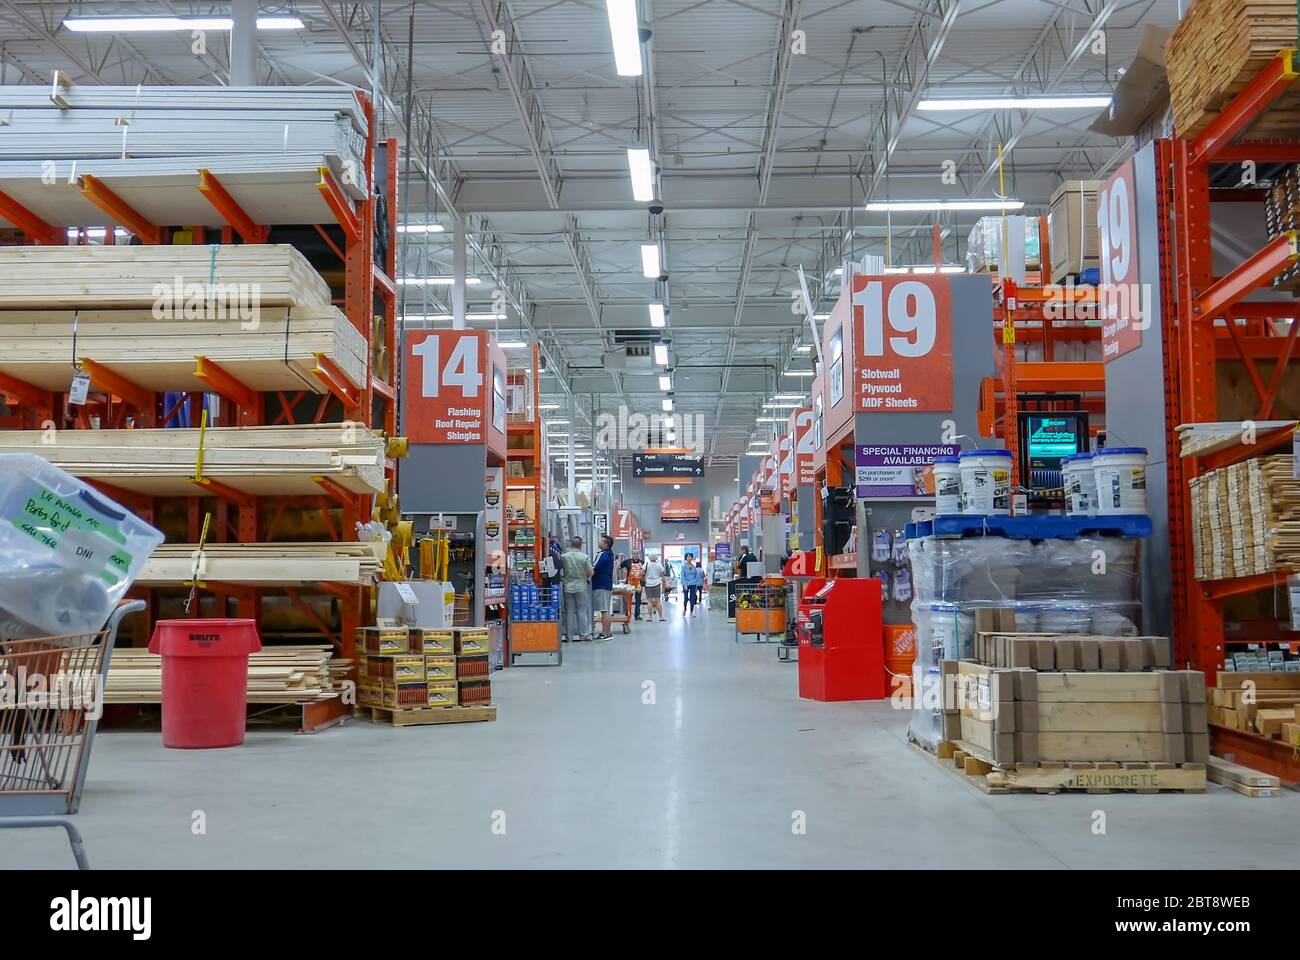 Motion Of People Shopping Inside Home Depot Store Stock Photo Alamy